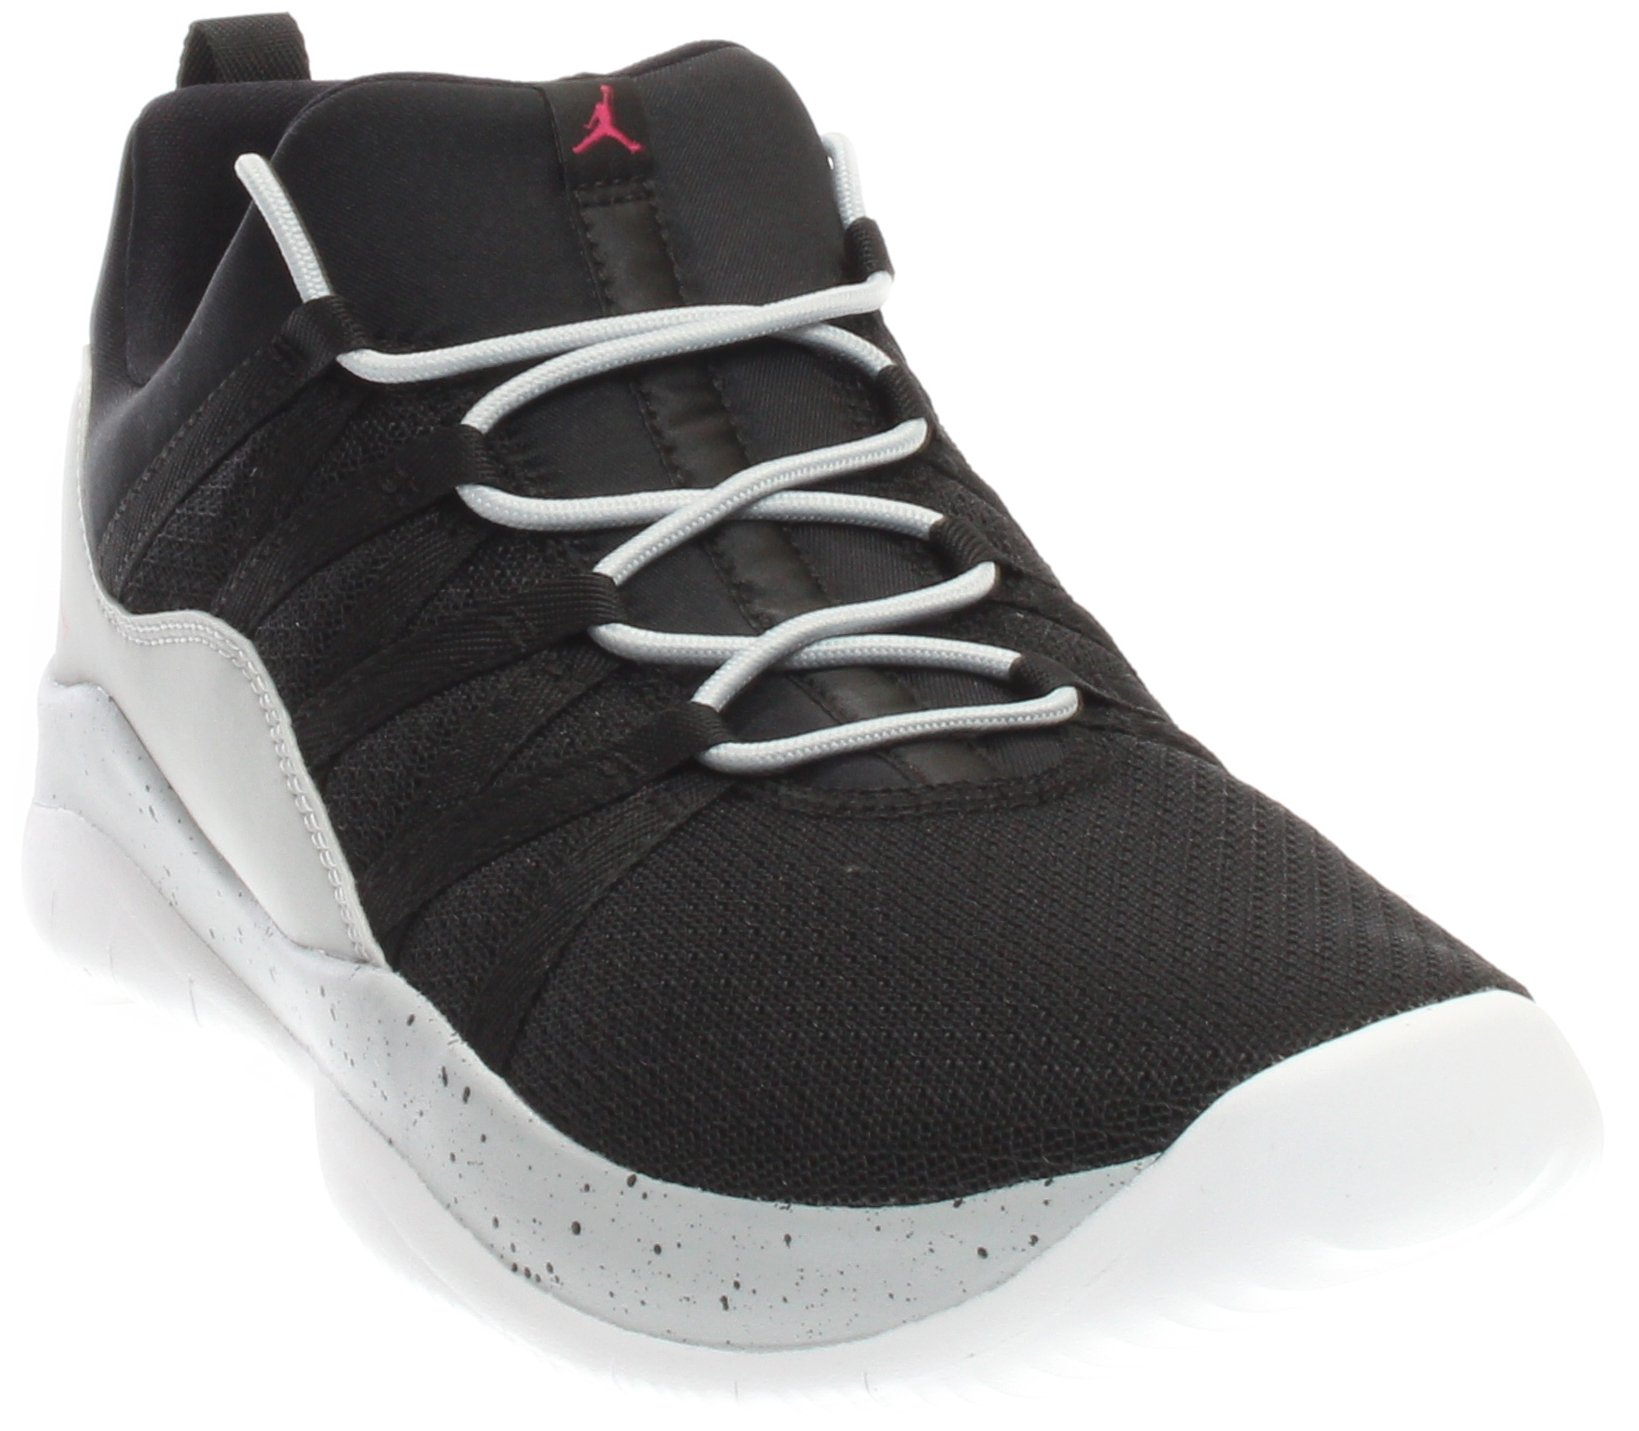 Jordan DECA Fly GG girls fashion-sneakers 844371-001_5.5Y - Black/Wolf Grey/White